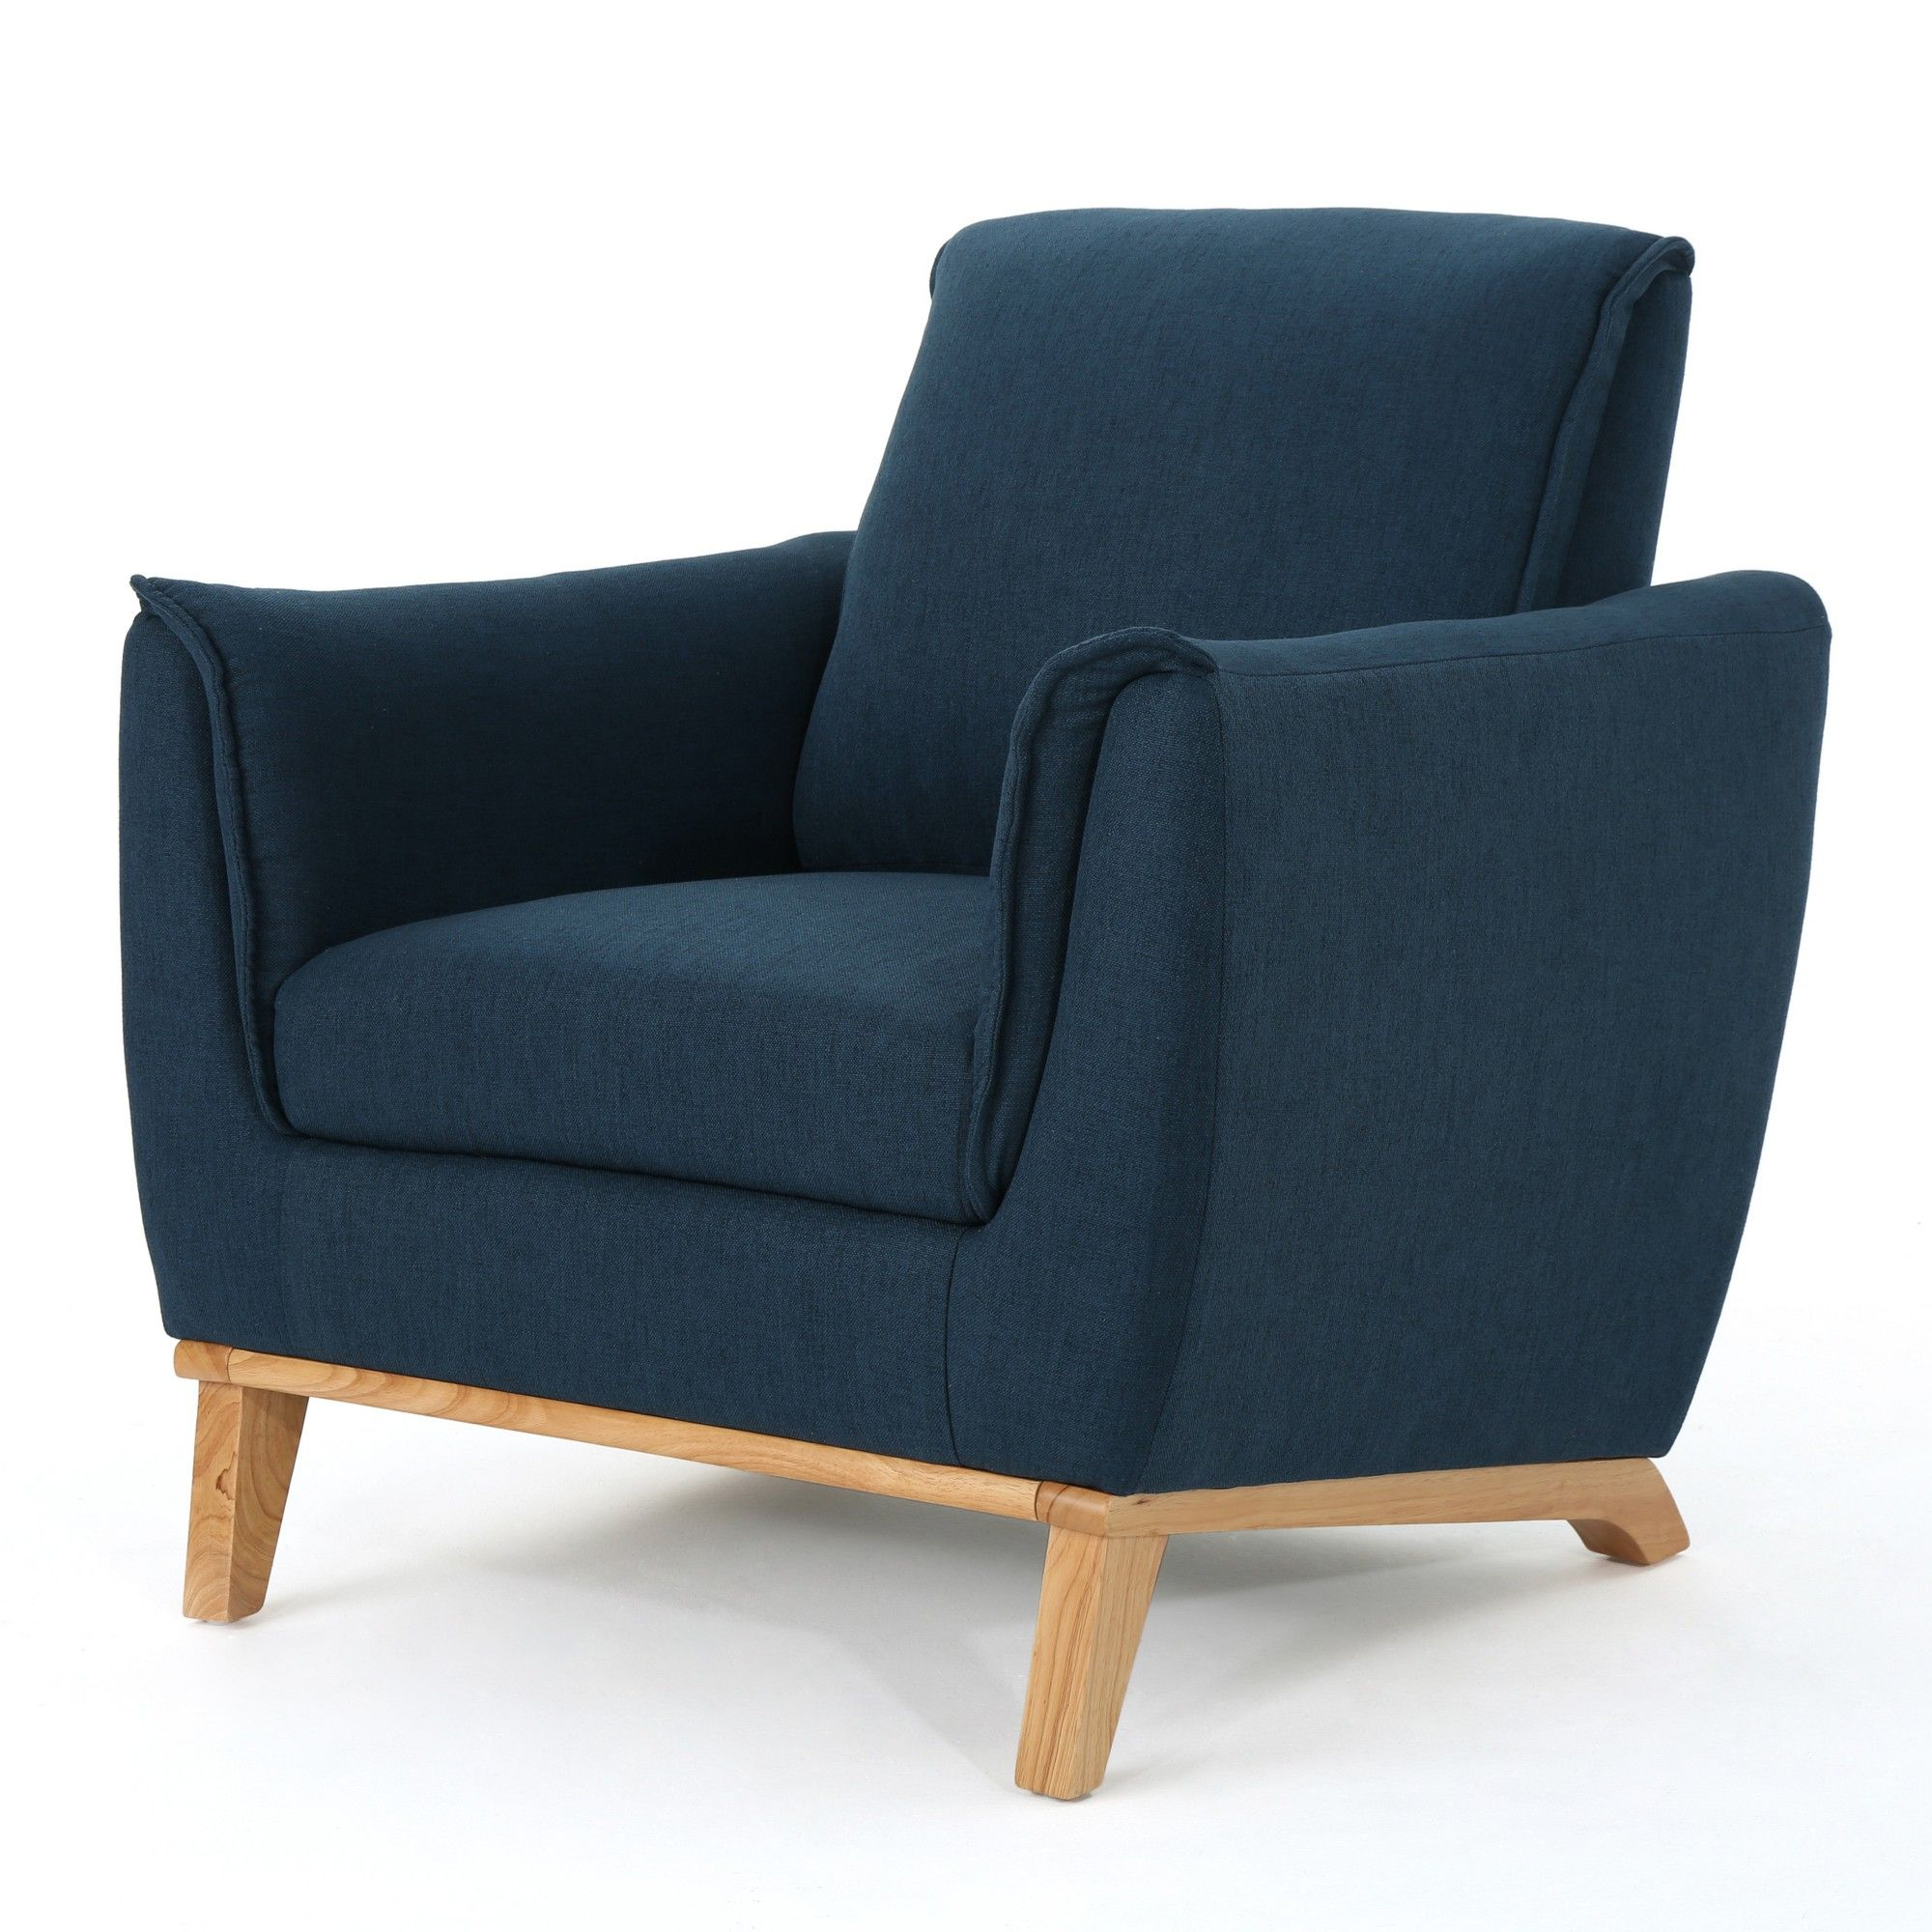 Christopher Knight Home Gwyneth Mid Century Club Chair Navy (Blue)